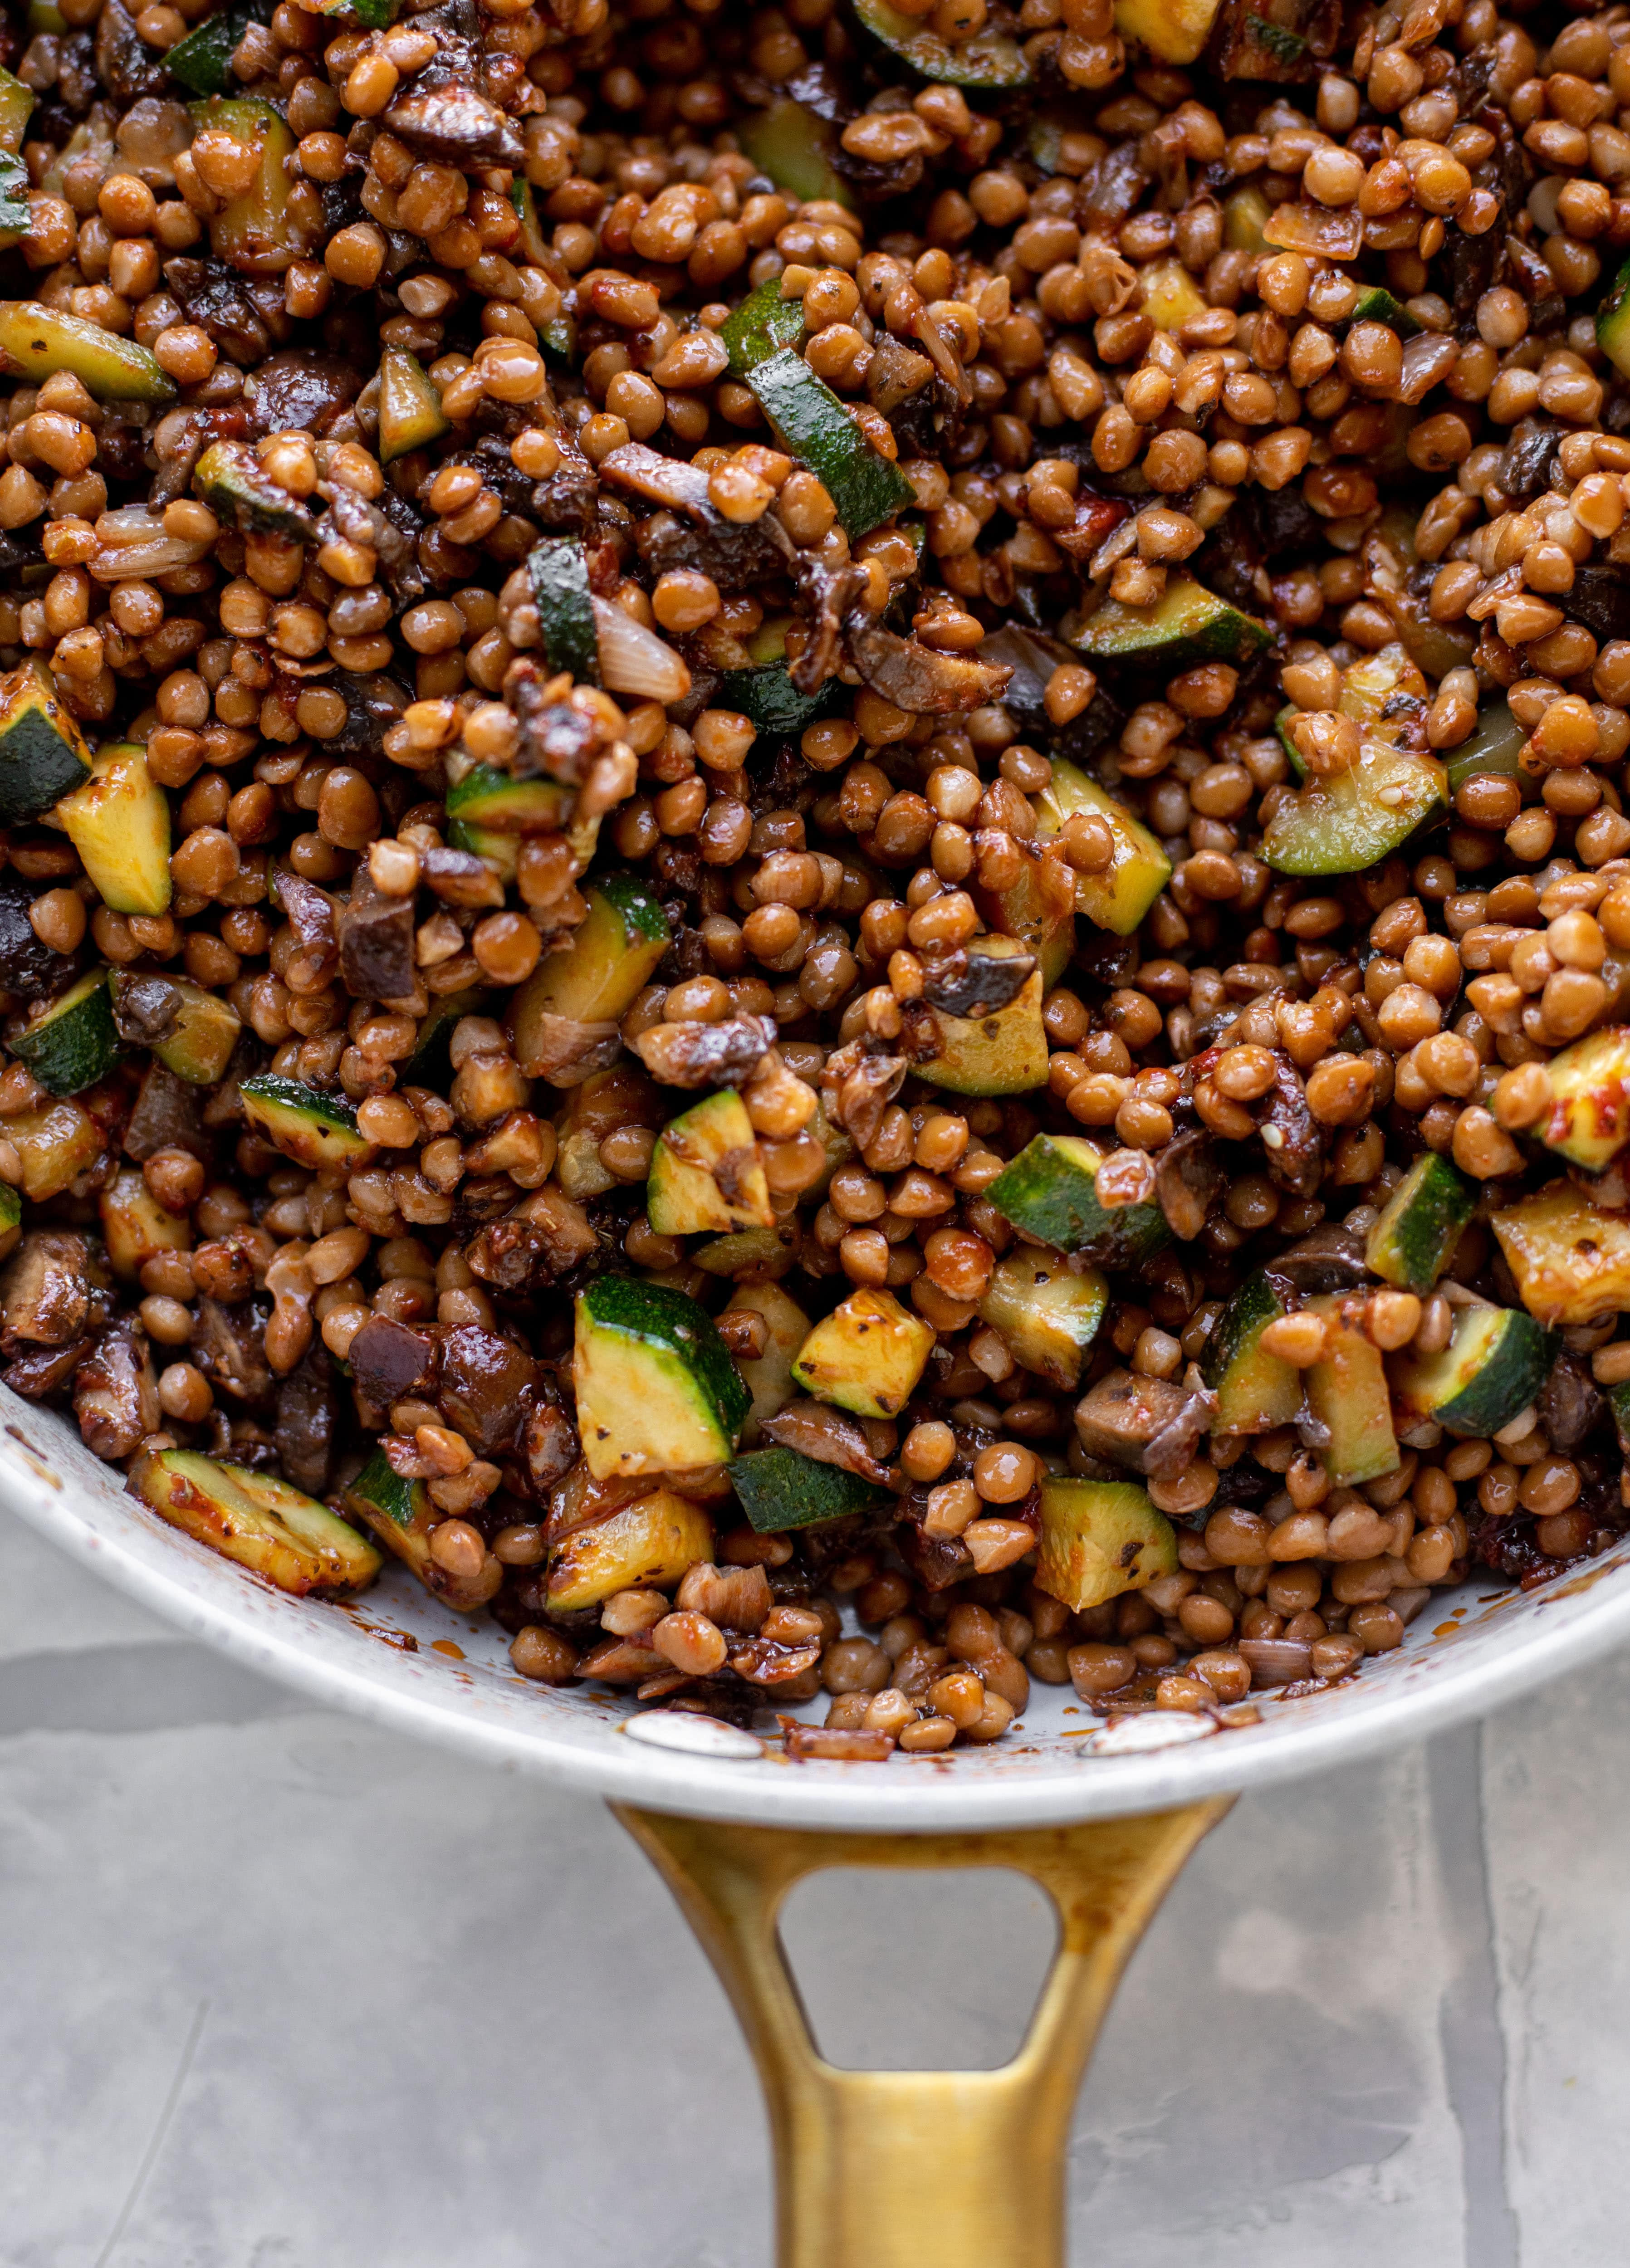 lentils with zucchini and mushrooms in a skillet